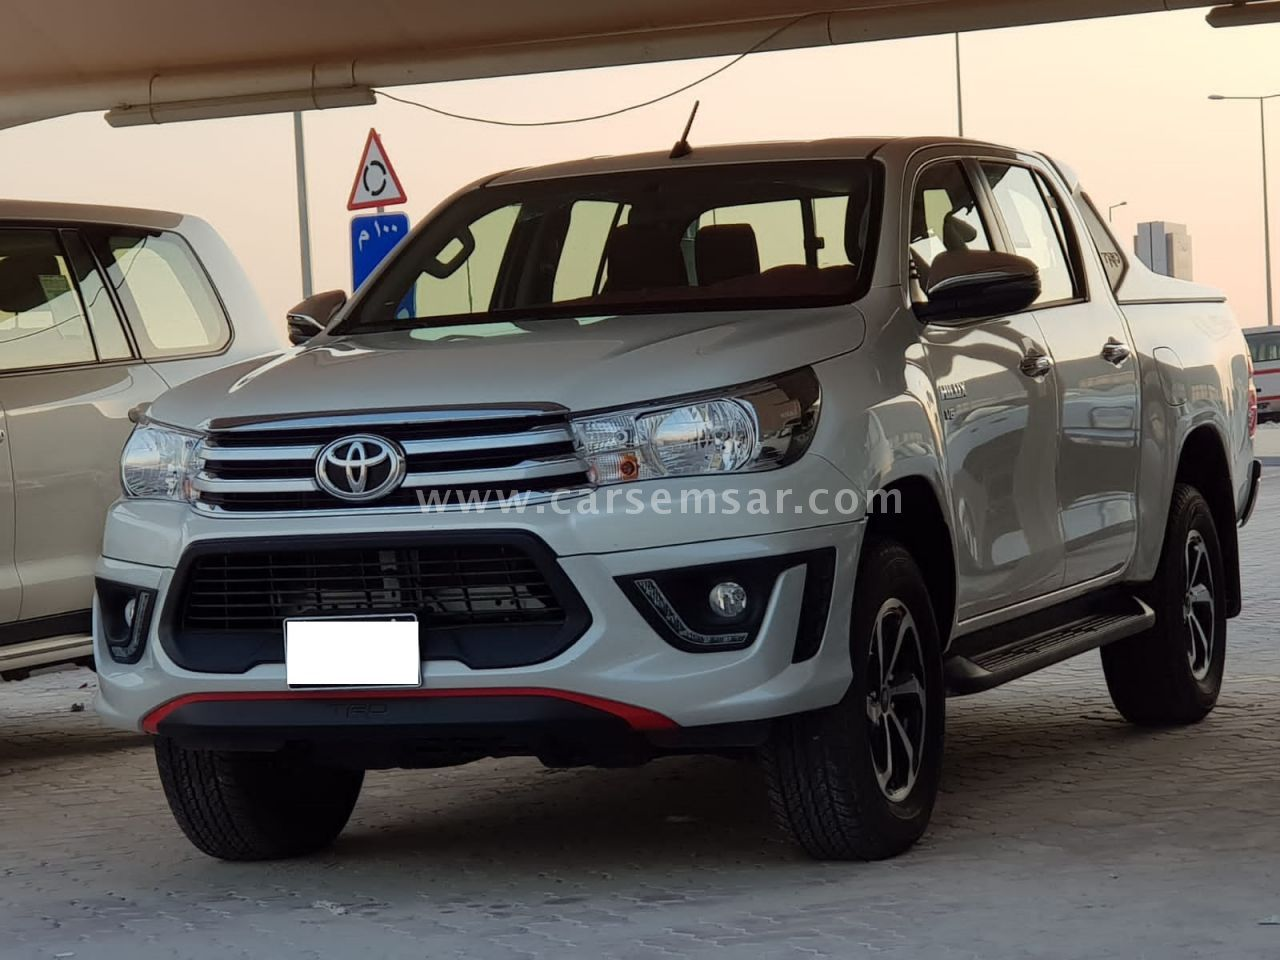 2020 Toyota Hilux Trd Sport Sr5 For Sale In Qatar New And Used Cars For Sale In Qatar